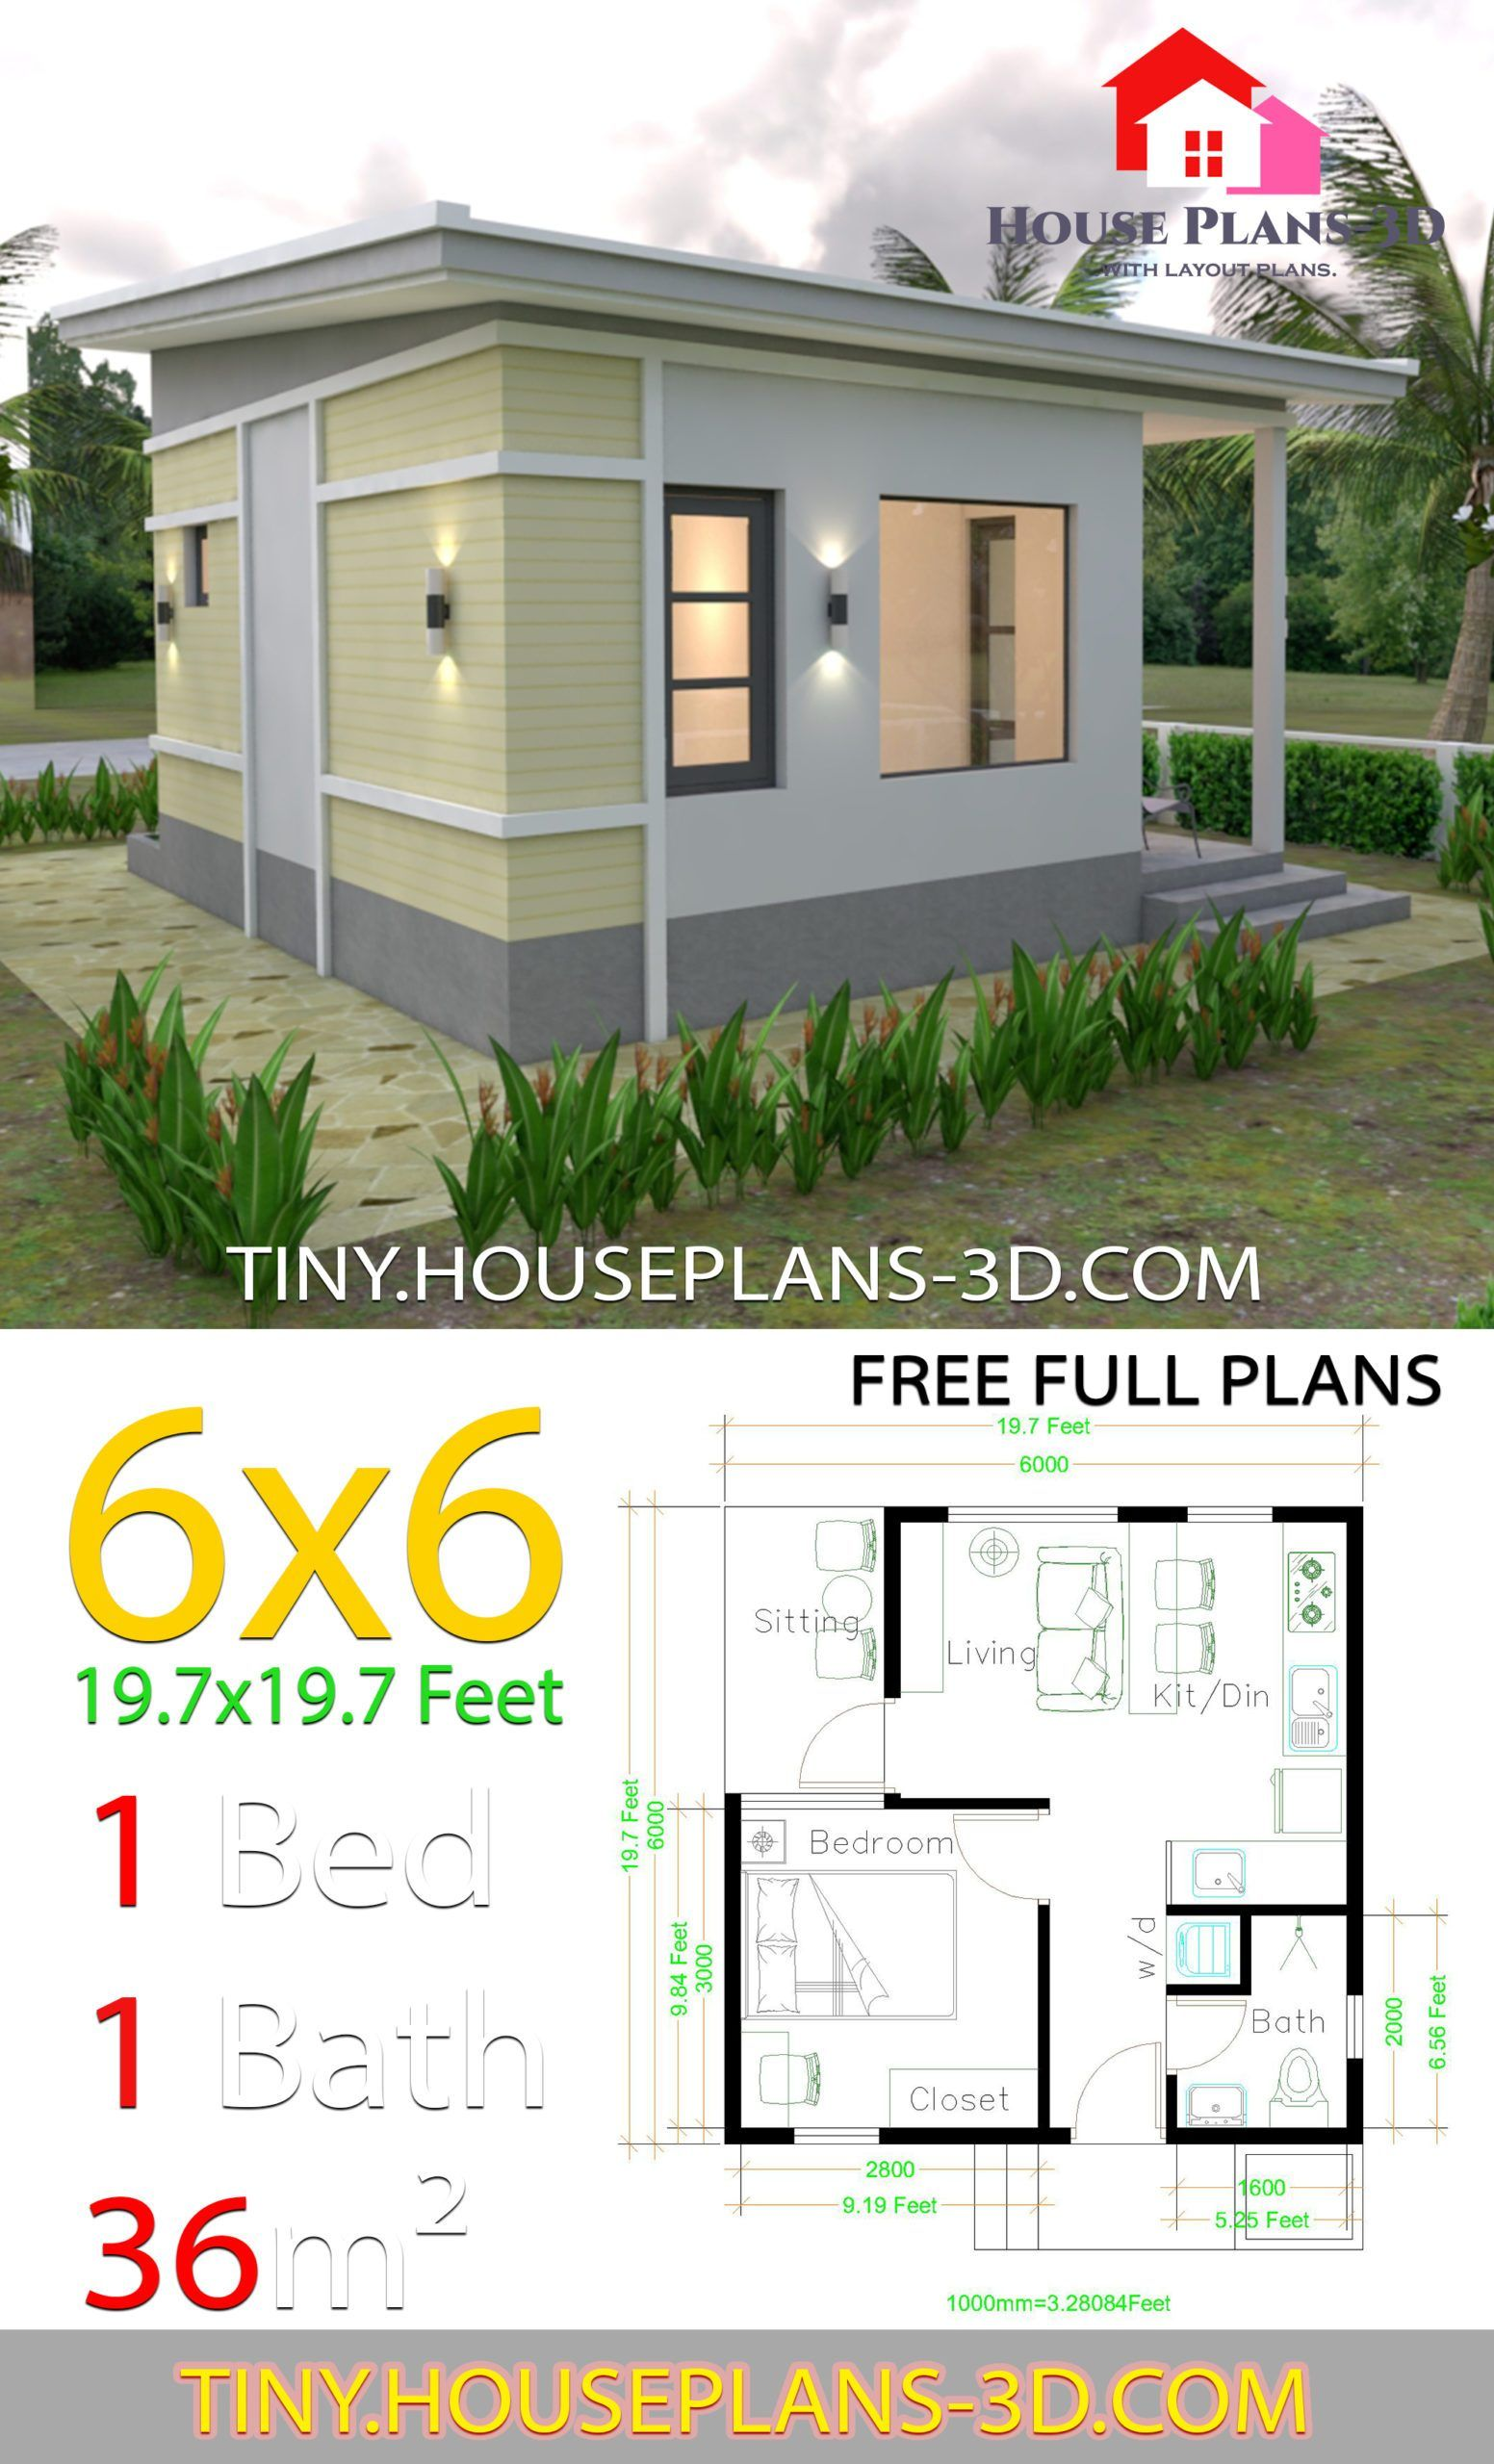 One Bedroom House Plans 6x6 With Shed Roof Tiny House Plans Small House Architecture One Bedroom House Small House Design Plans